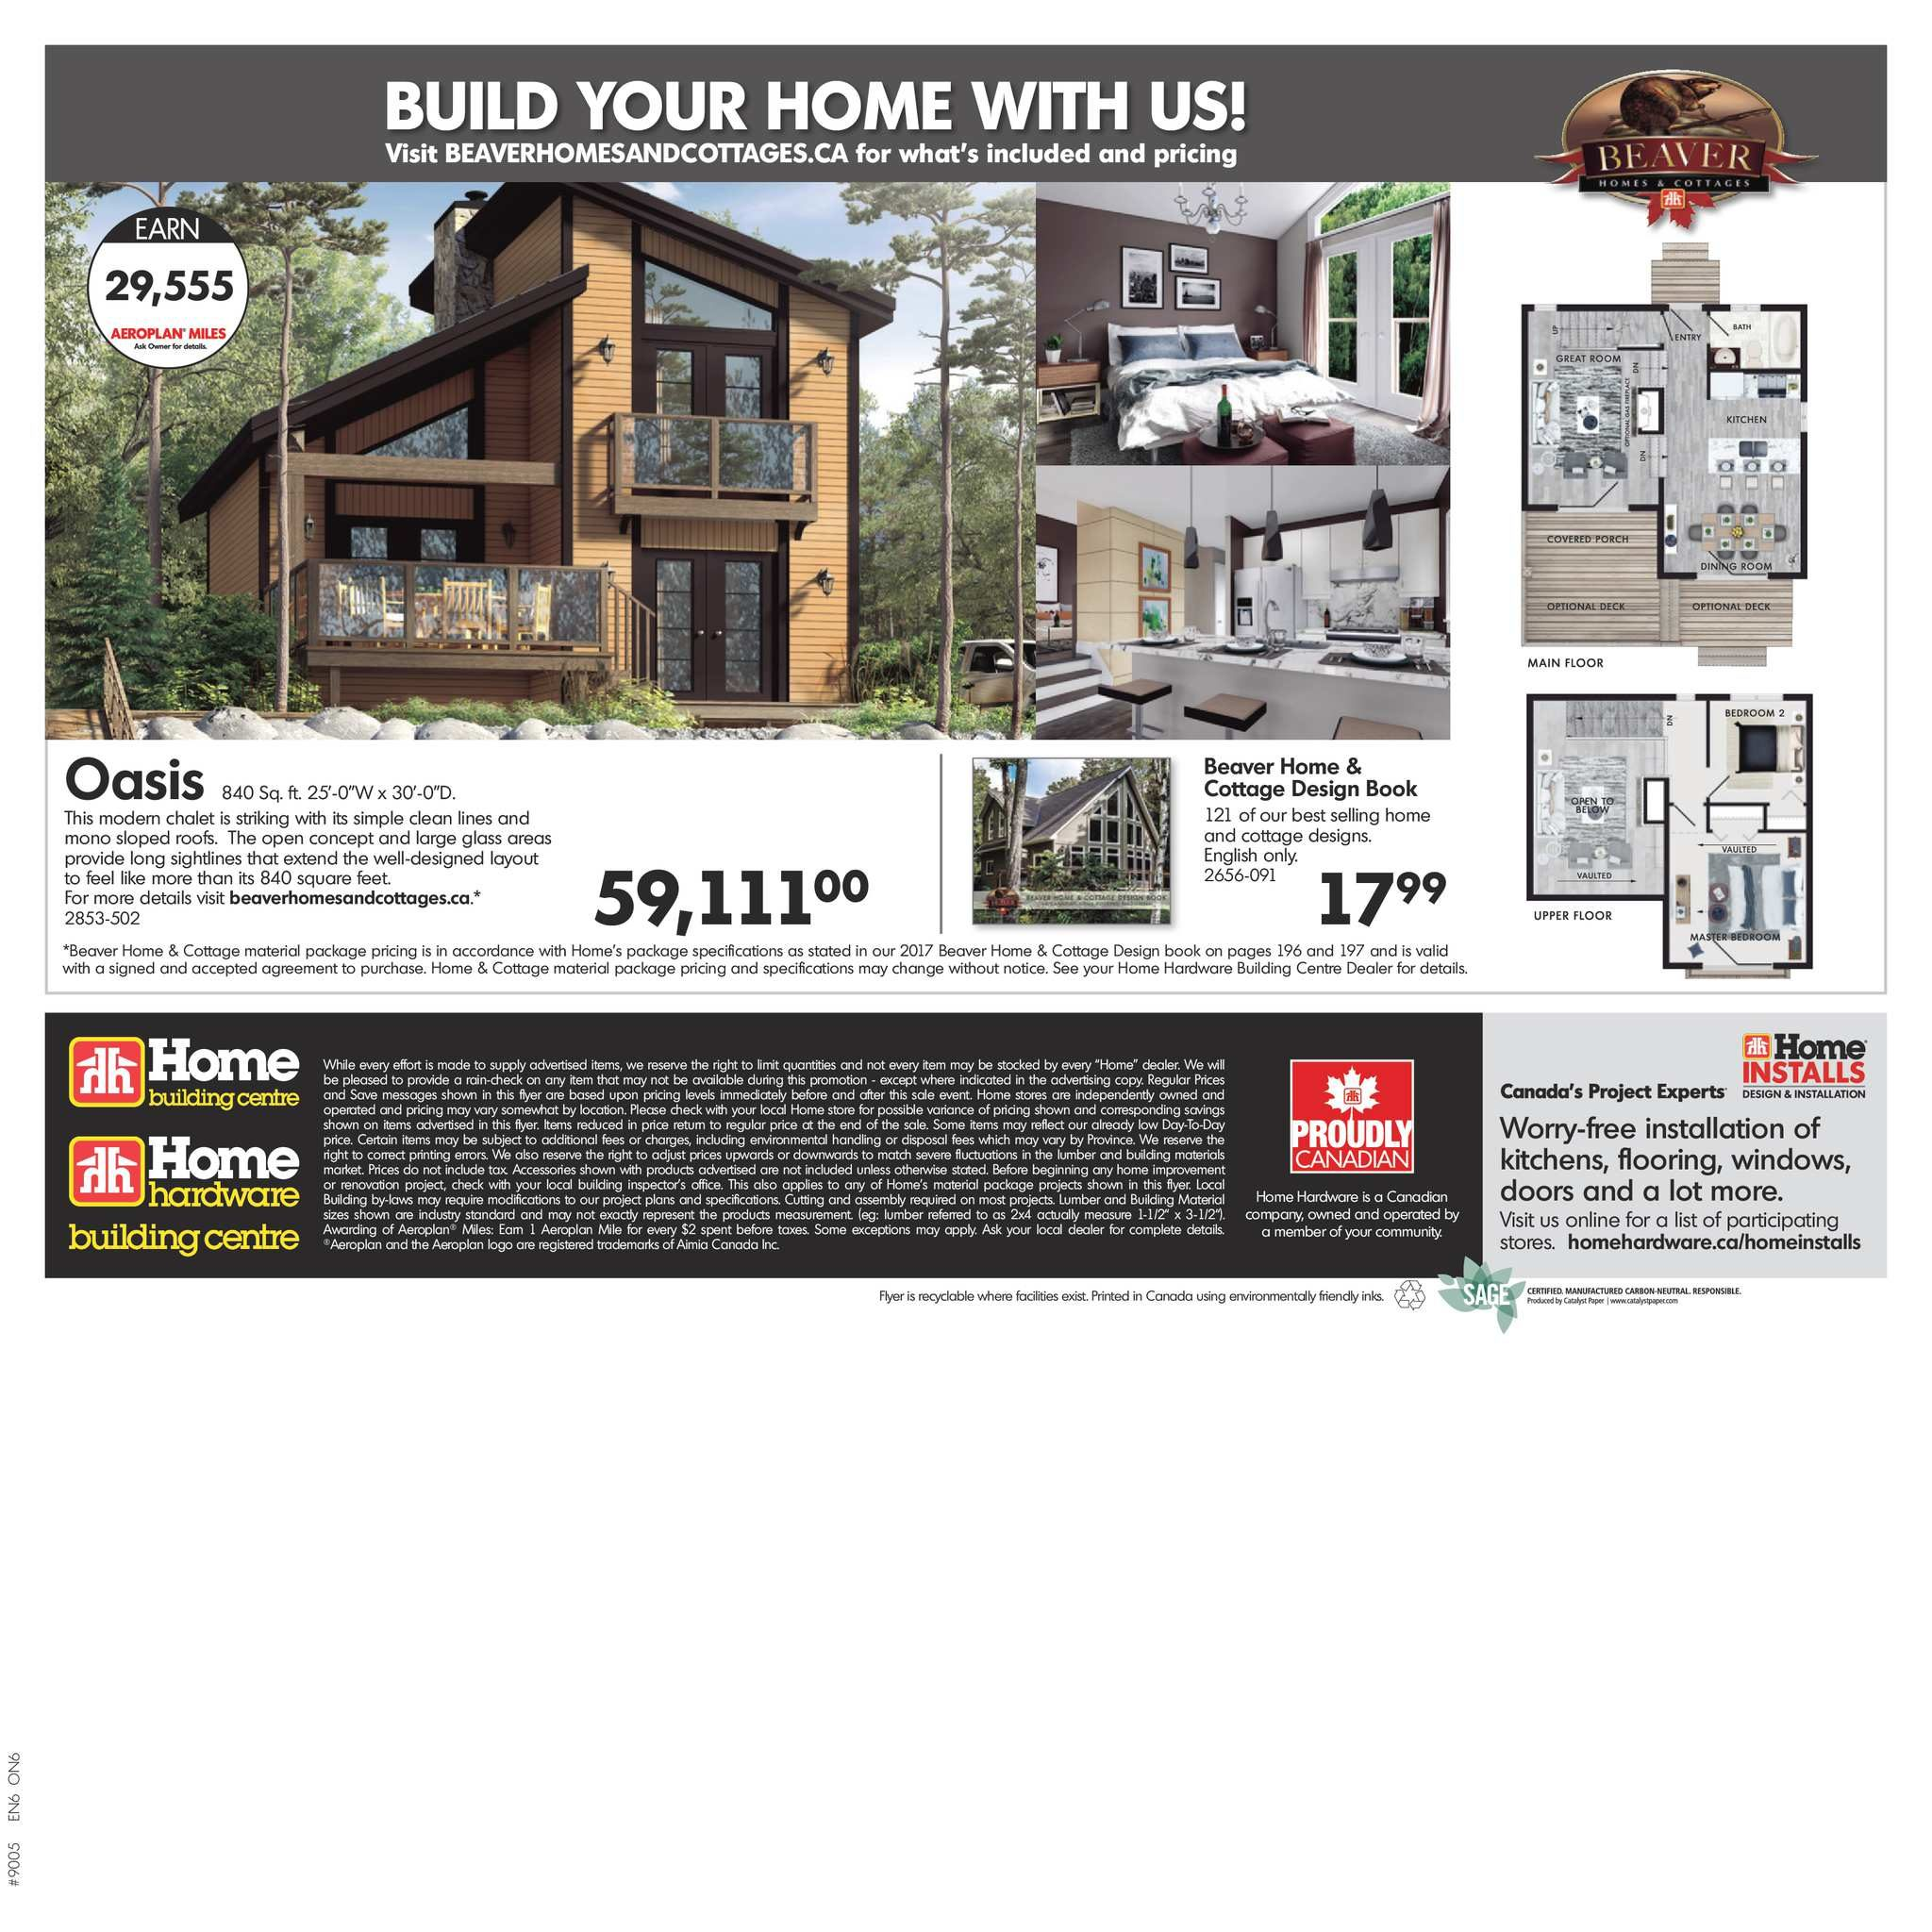 Home Hardware Weekly Flyer - Building Centre - Deck & Fence Event ...